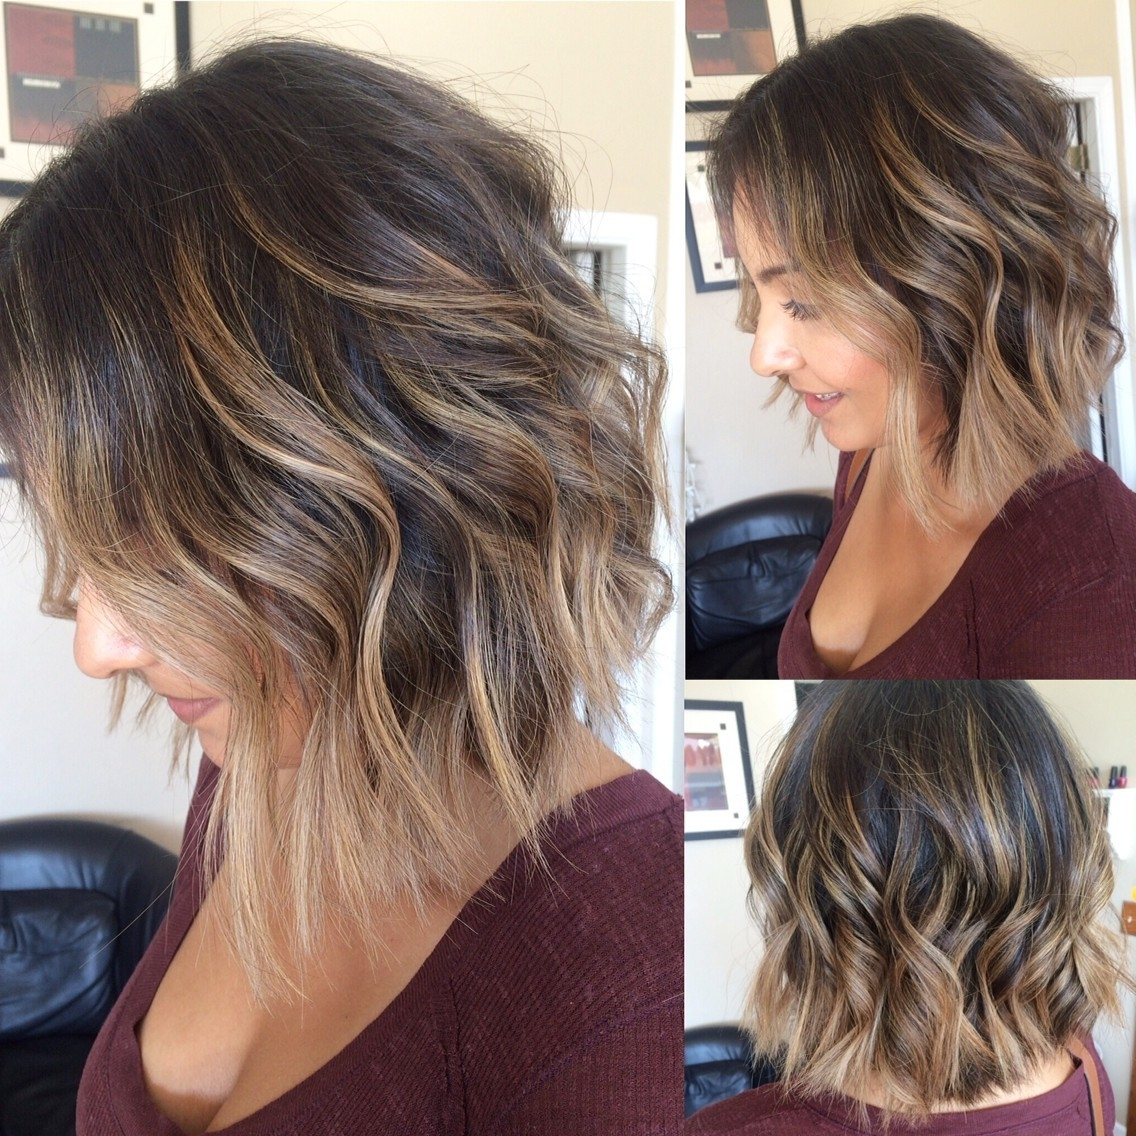 20 Lovely Medium Length Haircuts For 2017: Meidum Hair Styles For Women For Most Recently Released Feathered Pixie With Balayage Highlights (View 3 of 20)